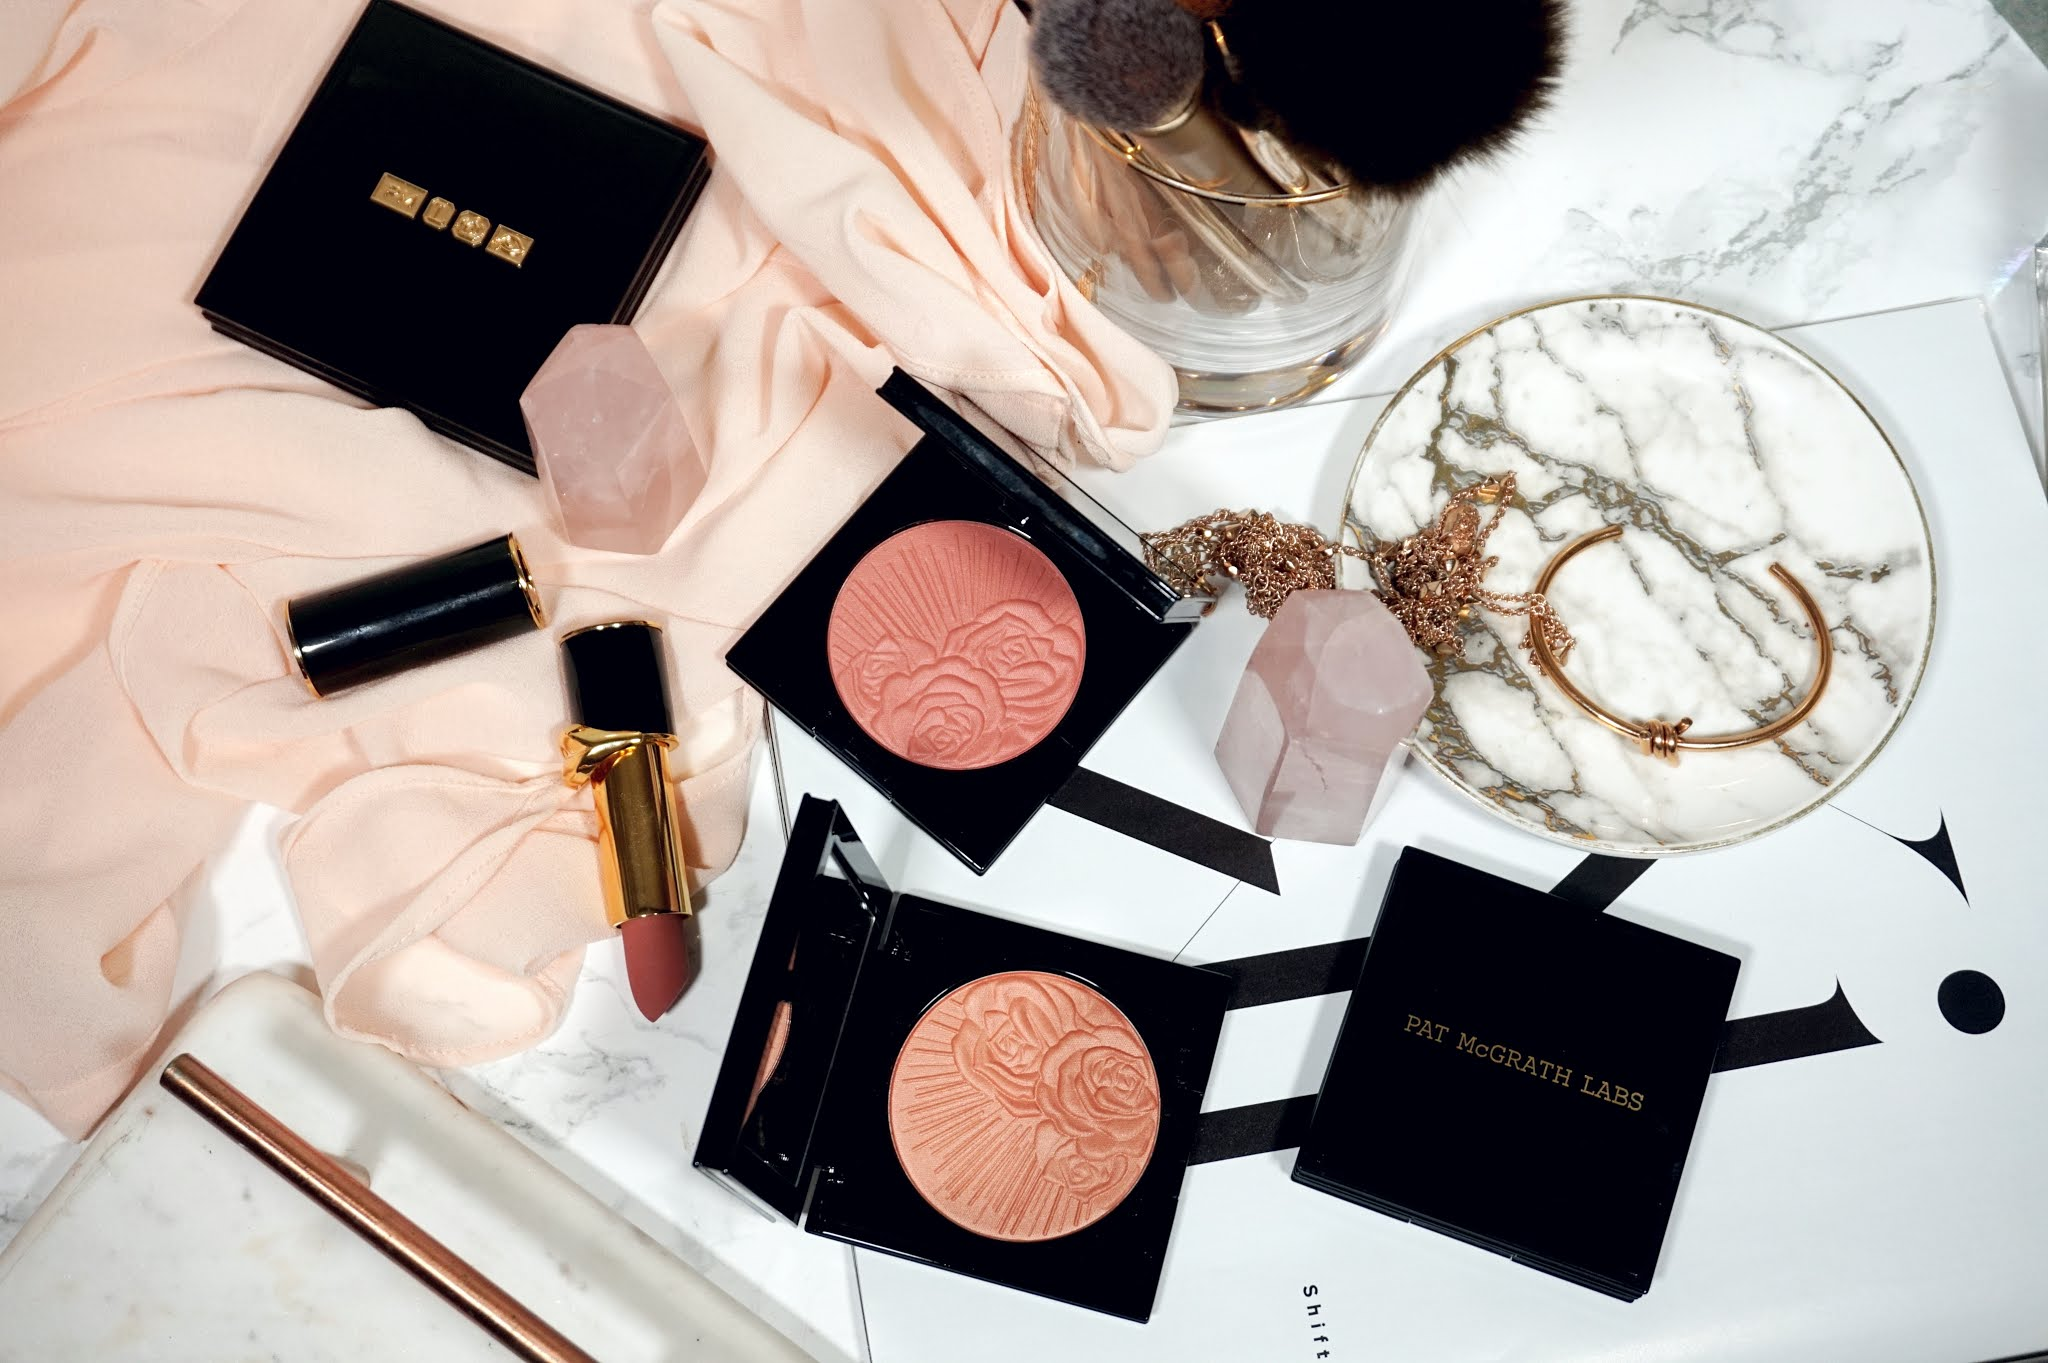 Pat McGrath Skin Fetish Divine Powder Blush Review and Swatches